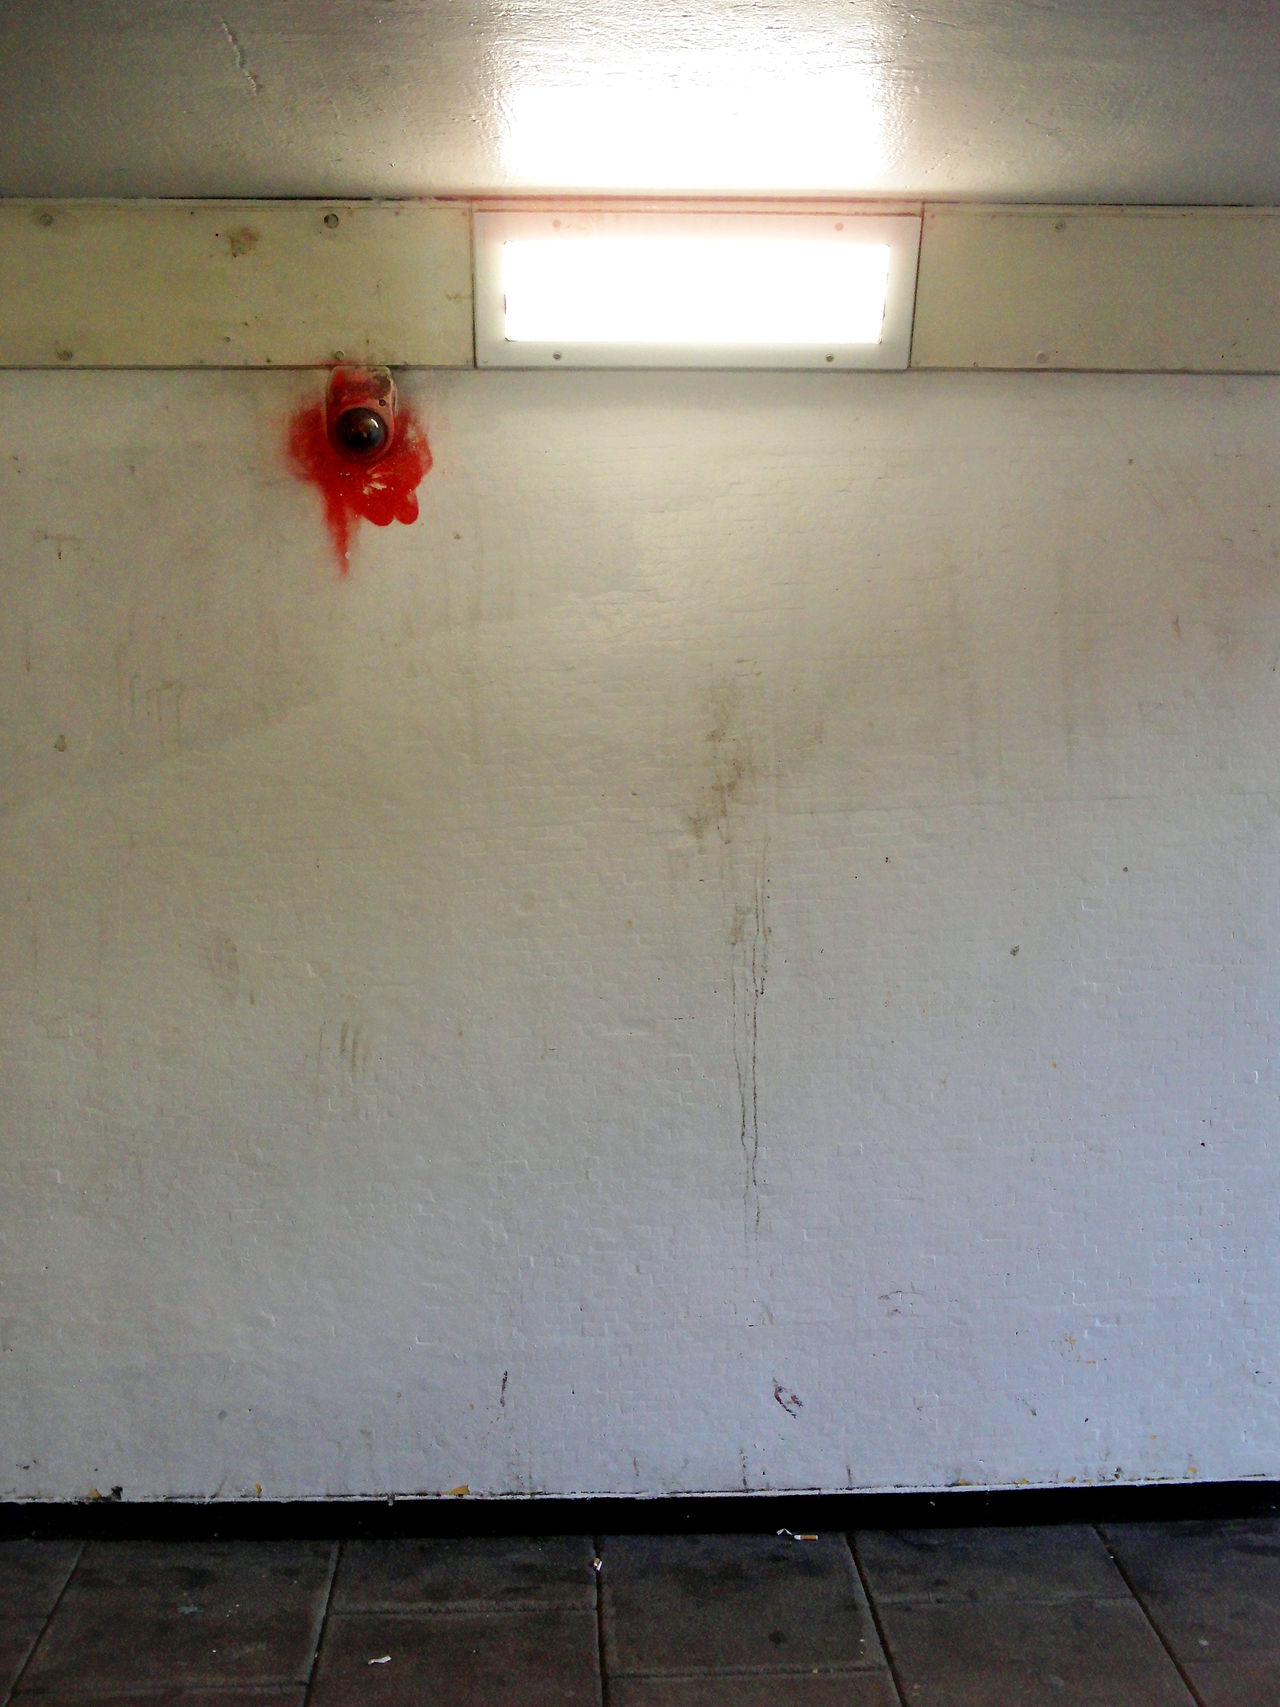 underpass, vandalized security camera. Day Illuminated No People Red Tunnel, Pedestrian, Walkway, Paint, White Wall,